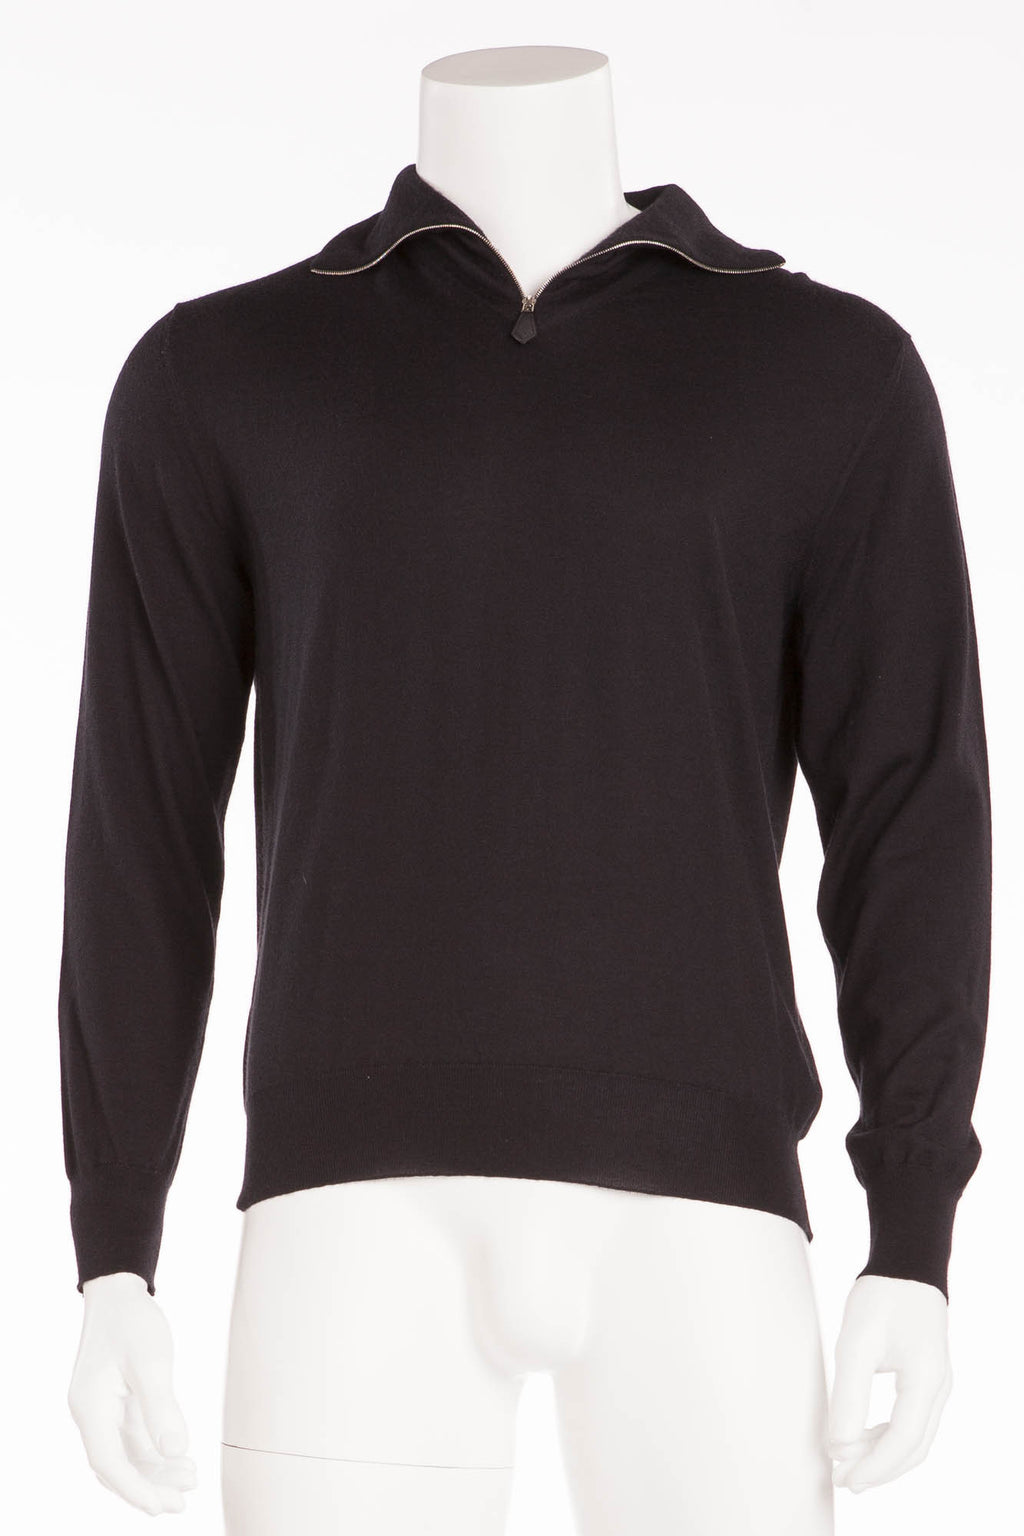 Authentic Hermes - Black Long Sleeve Zip Neck Cashmere - XL